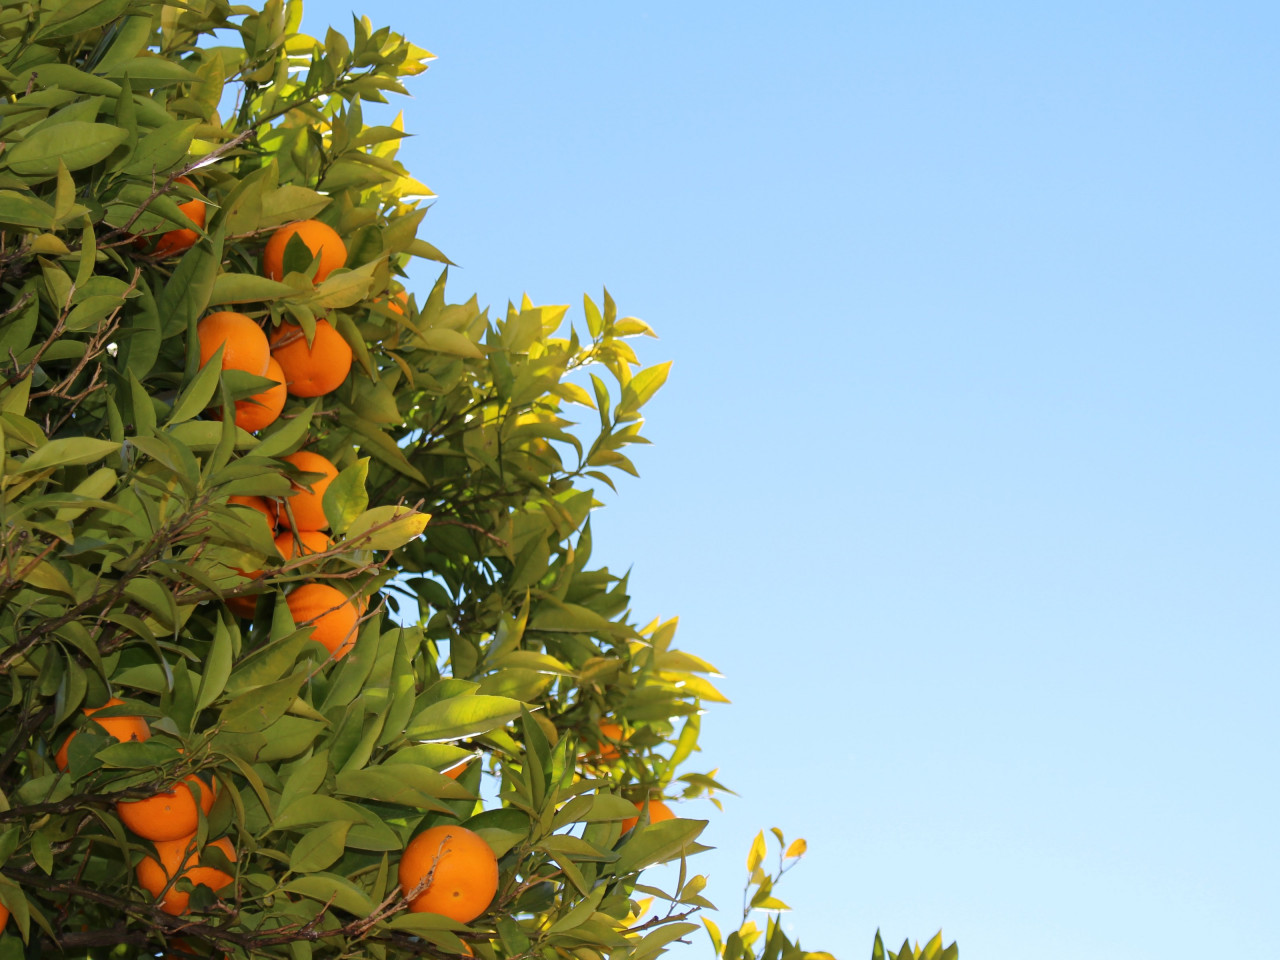 Oranges or clementines in tree wallpaper 1280x960